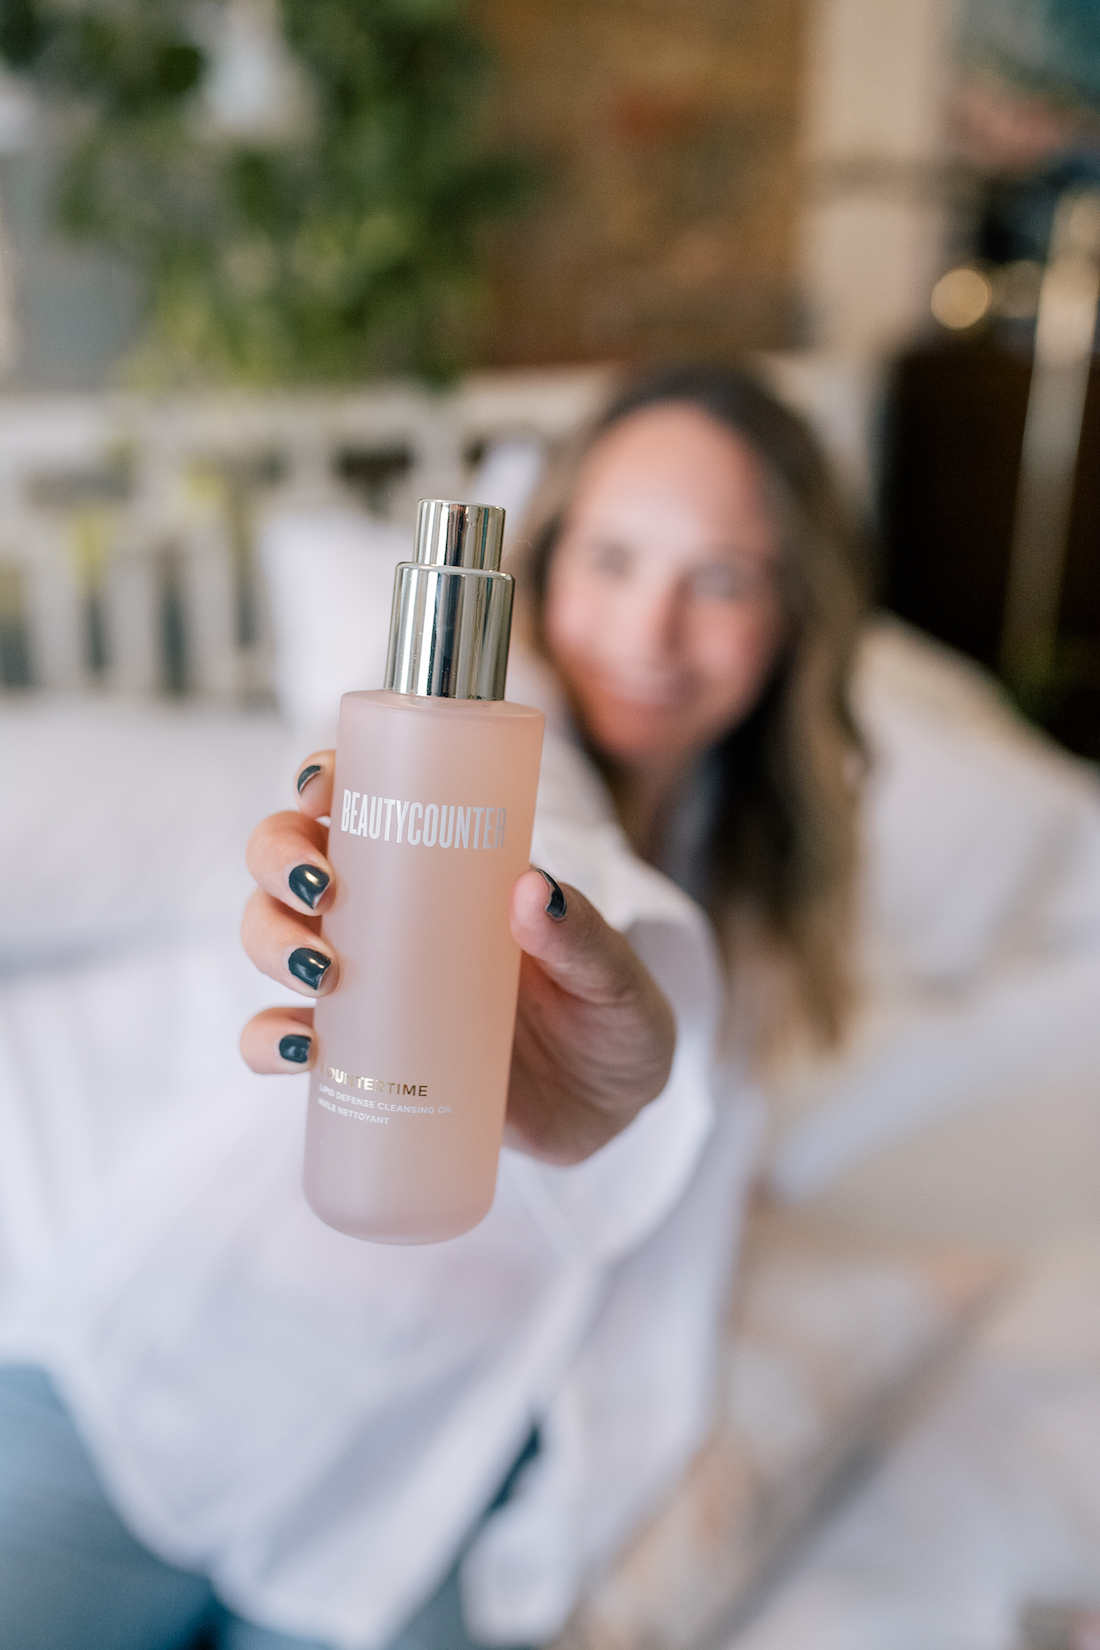 beautycounter product review as seen here with a bottle